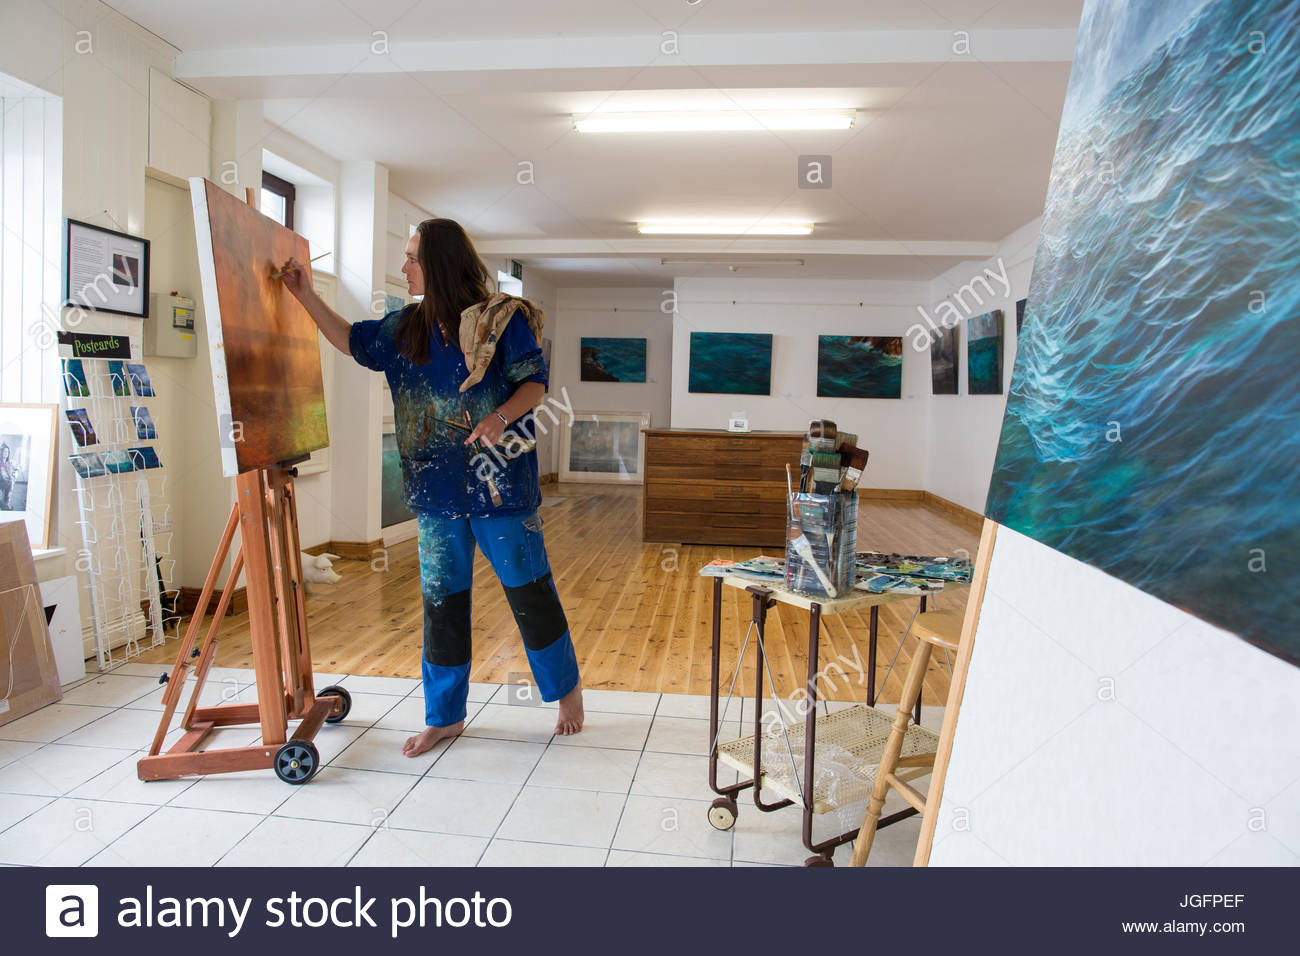 Artist Carol Cronin paints the waterscapes of Ireland in her Dingle studio. - Stock Image